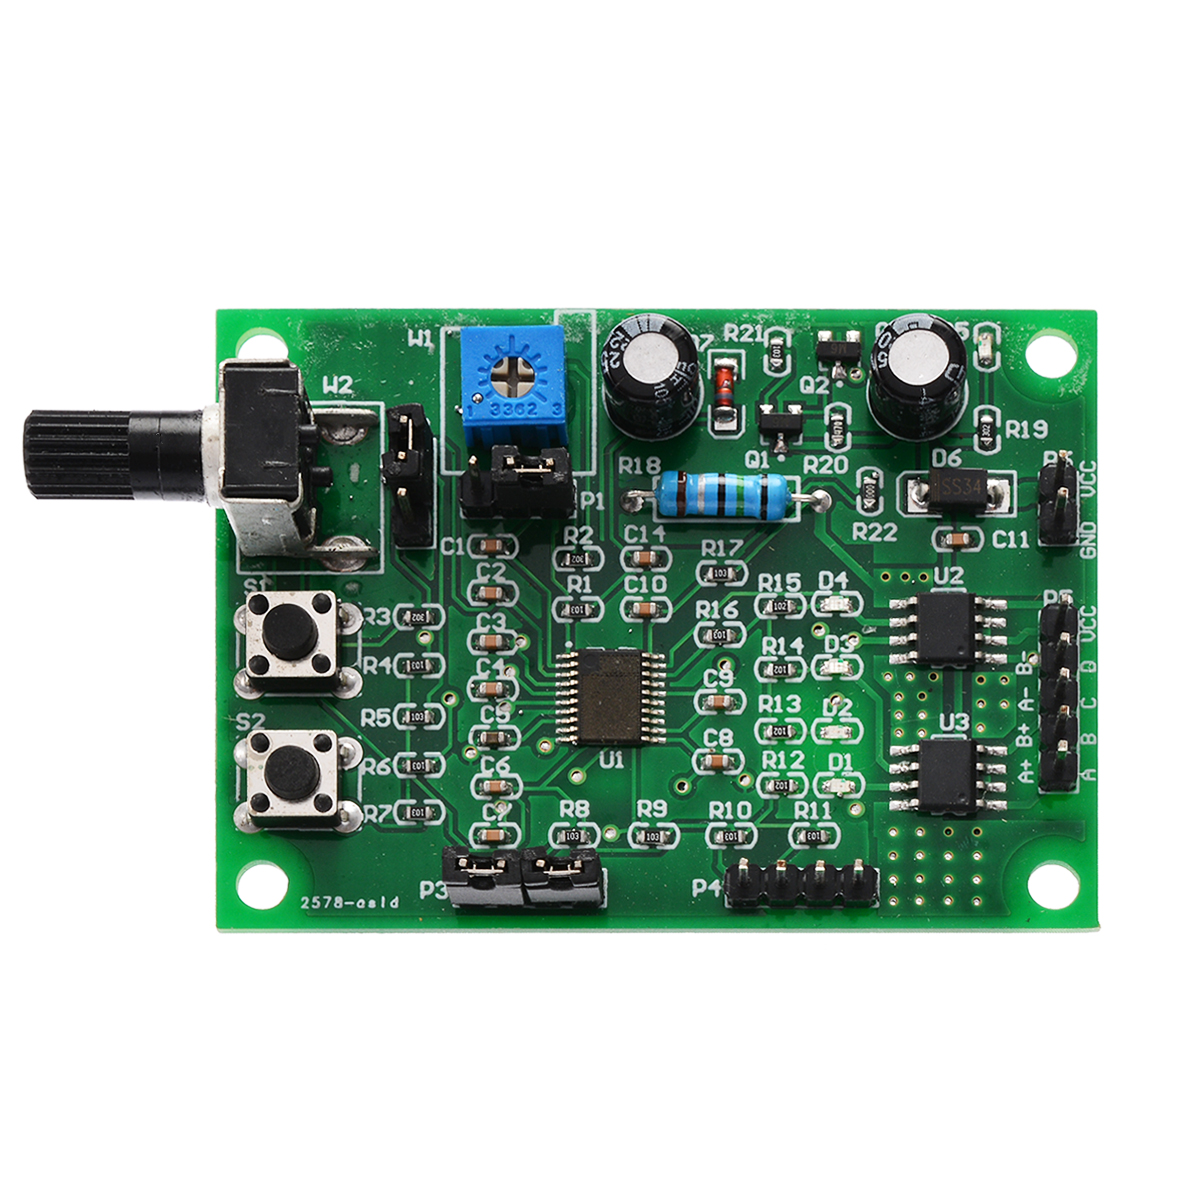 DC 5V-12V 2-Phase 4-Wire Micro Stepper Motor Driver Mini 4-Phase 5-Wire Stepping Motor Speed Controller Module Board DIY